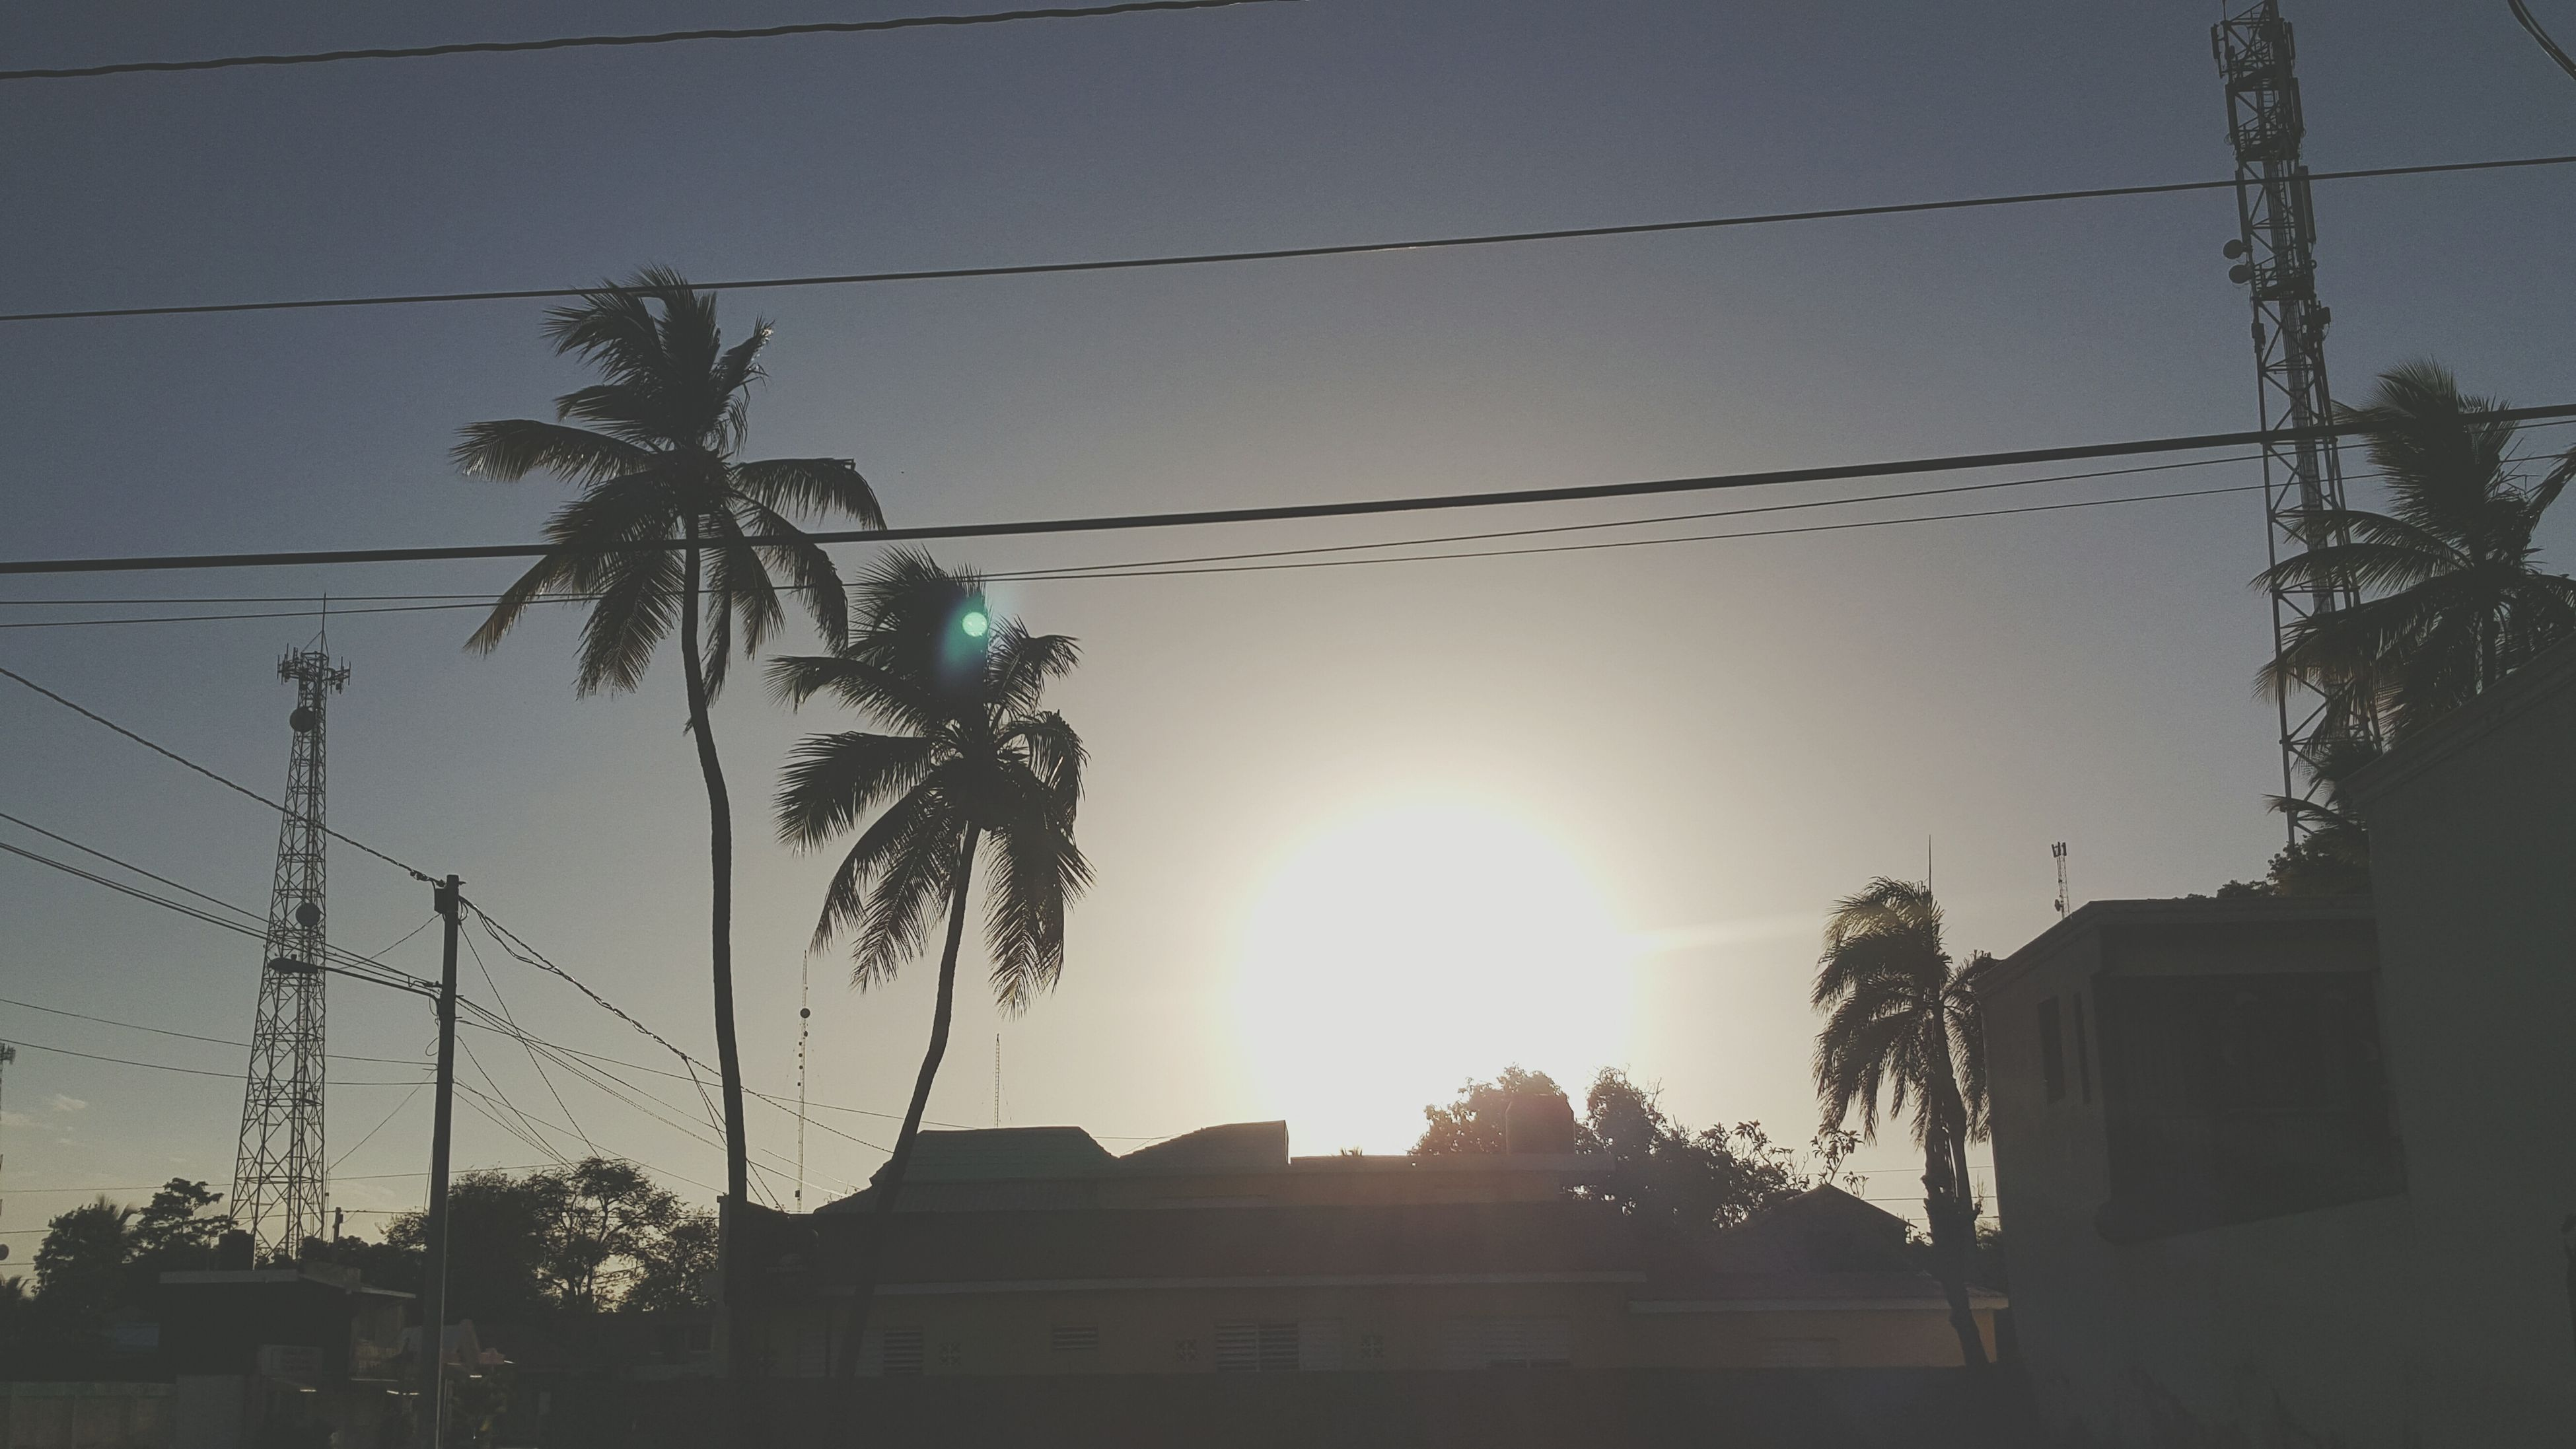 cable, palm tree, power line, tree, sun, electricity, low angle view, power supply, electricity pylon, outdoors, sunset, built structure, silhouette, architecture, clear sky, sunlight, sky, building exterior, no people, city, day, nature